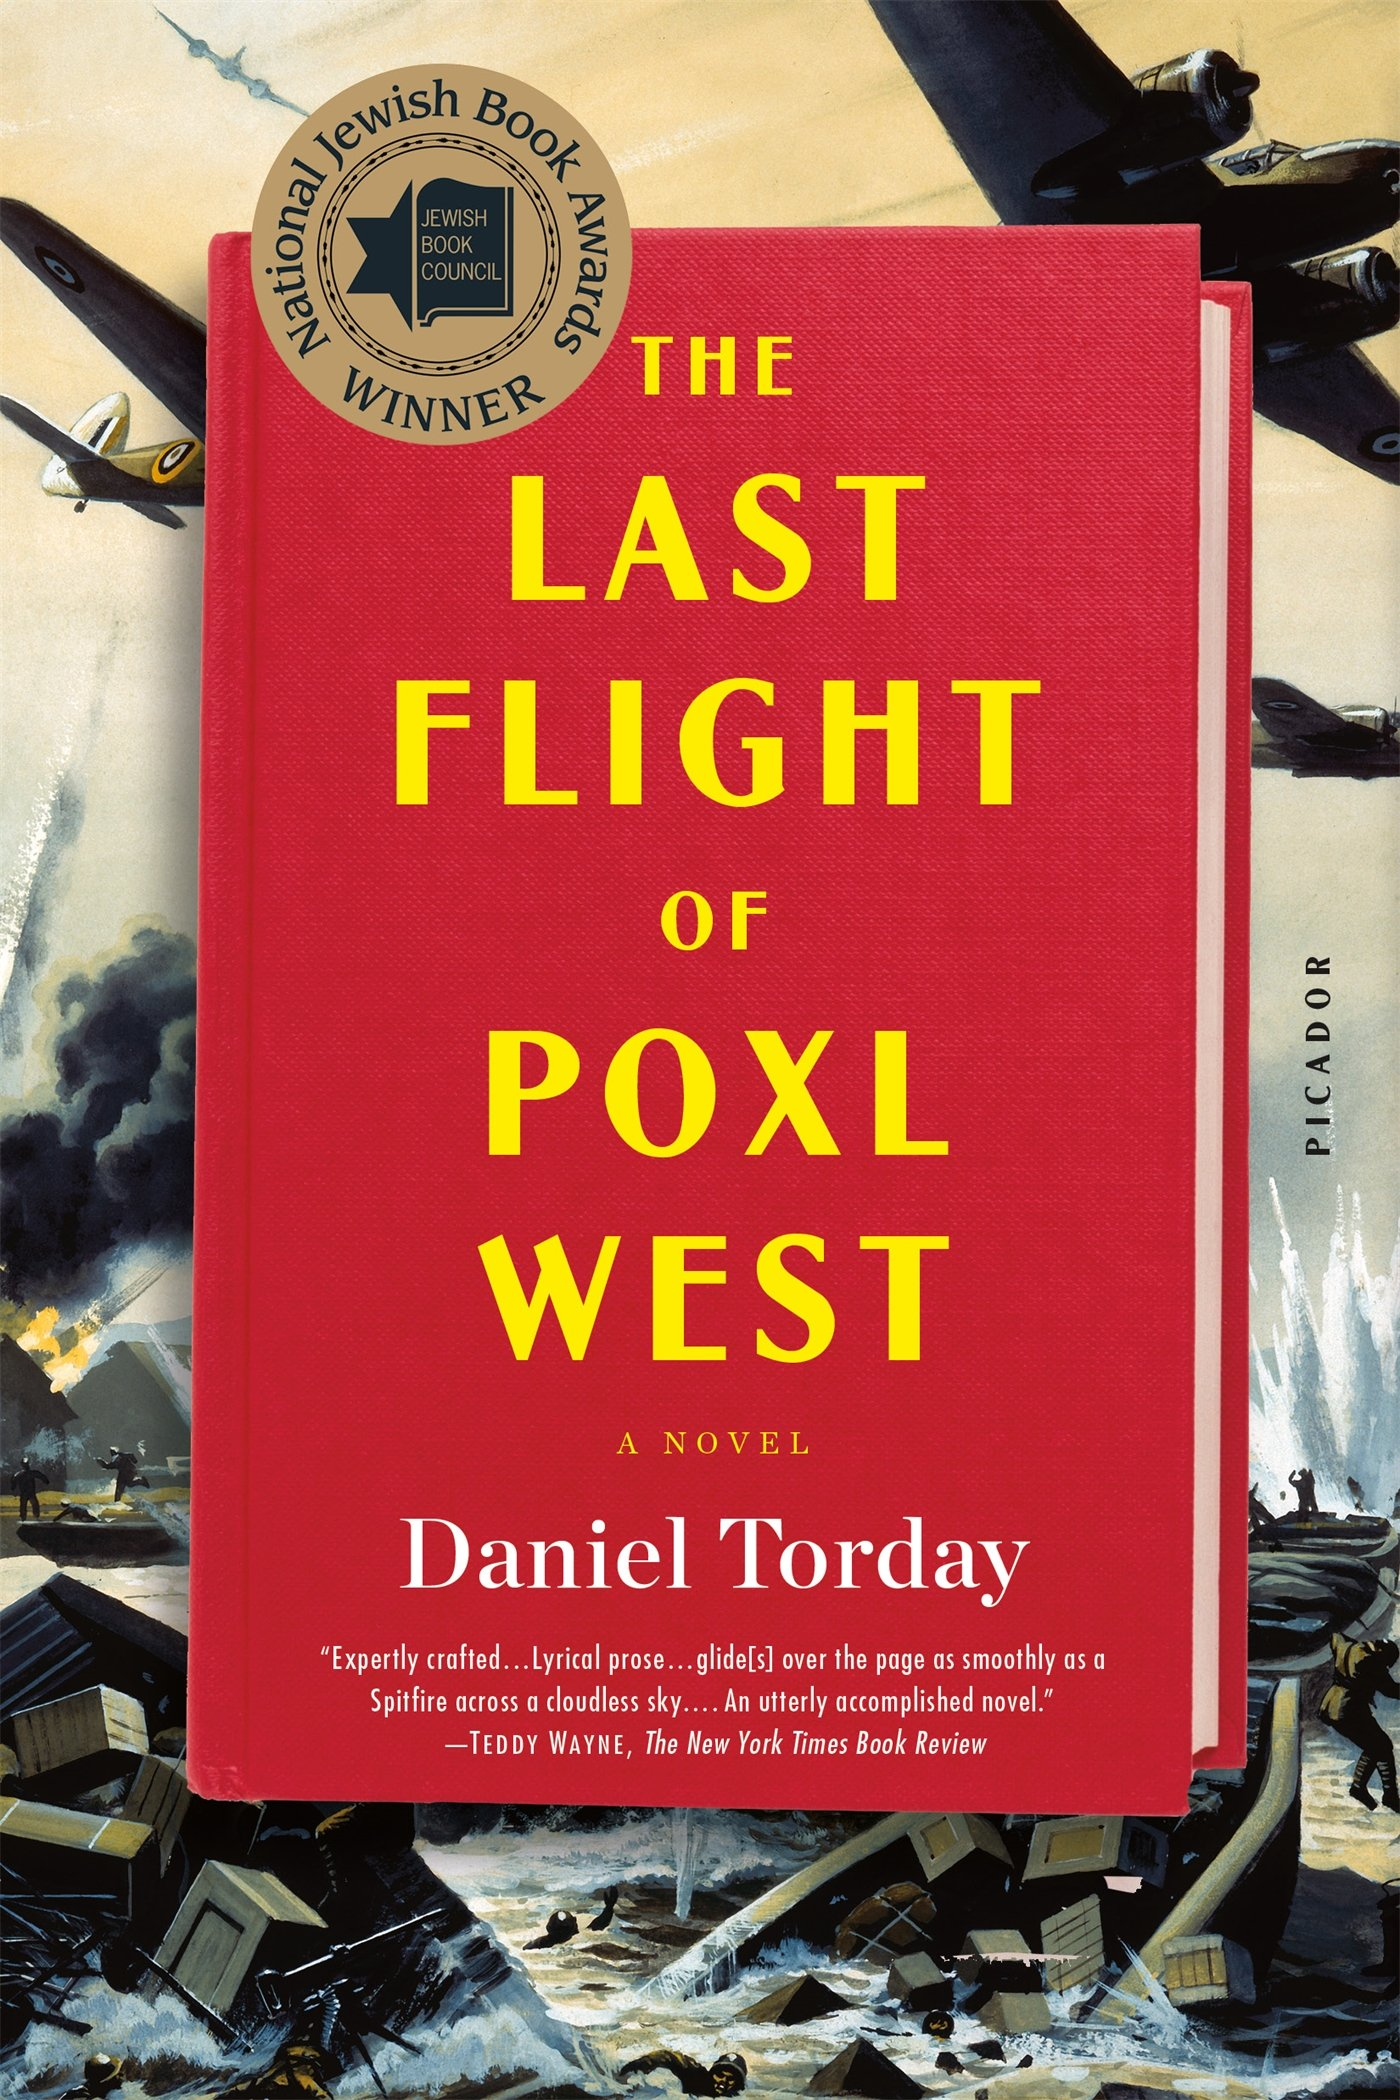 the last flight of poxl west a novel daniel torday the last flight of poxl west a novel daniel torday 9781250081605 com books